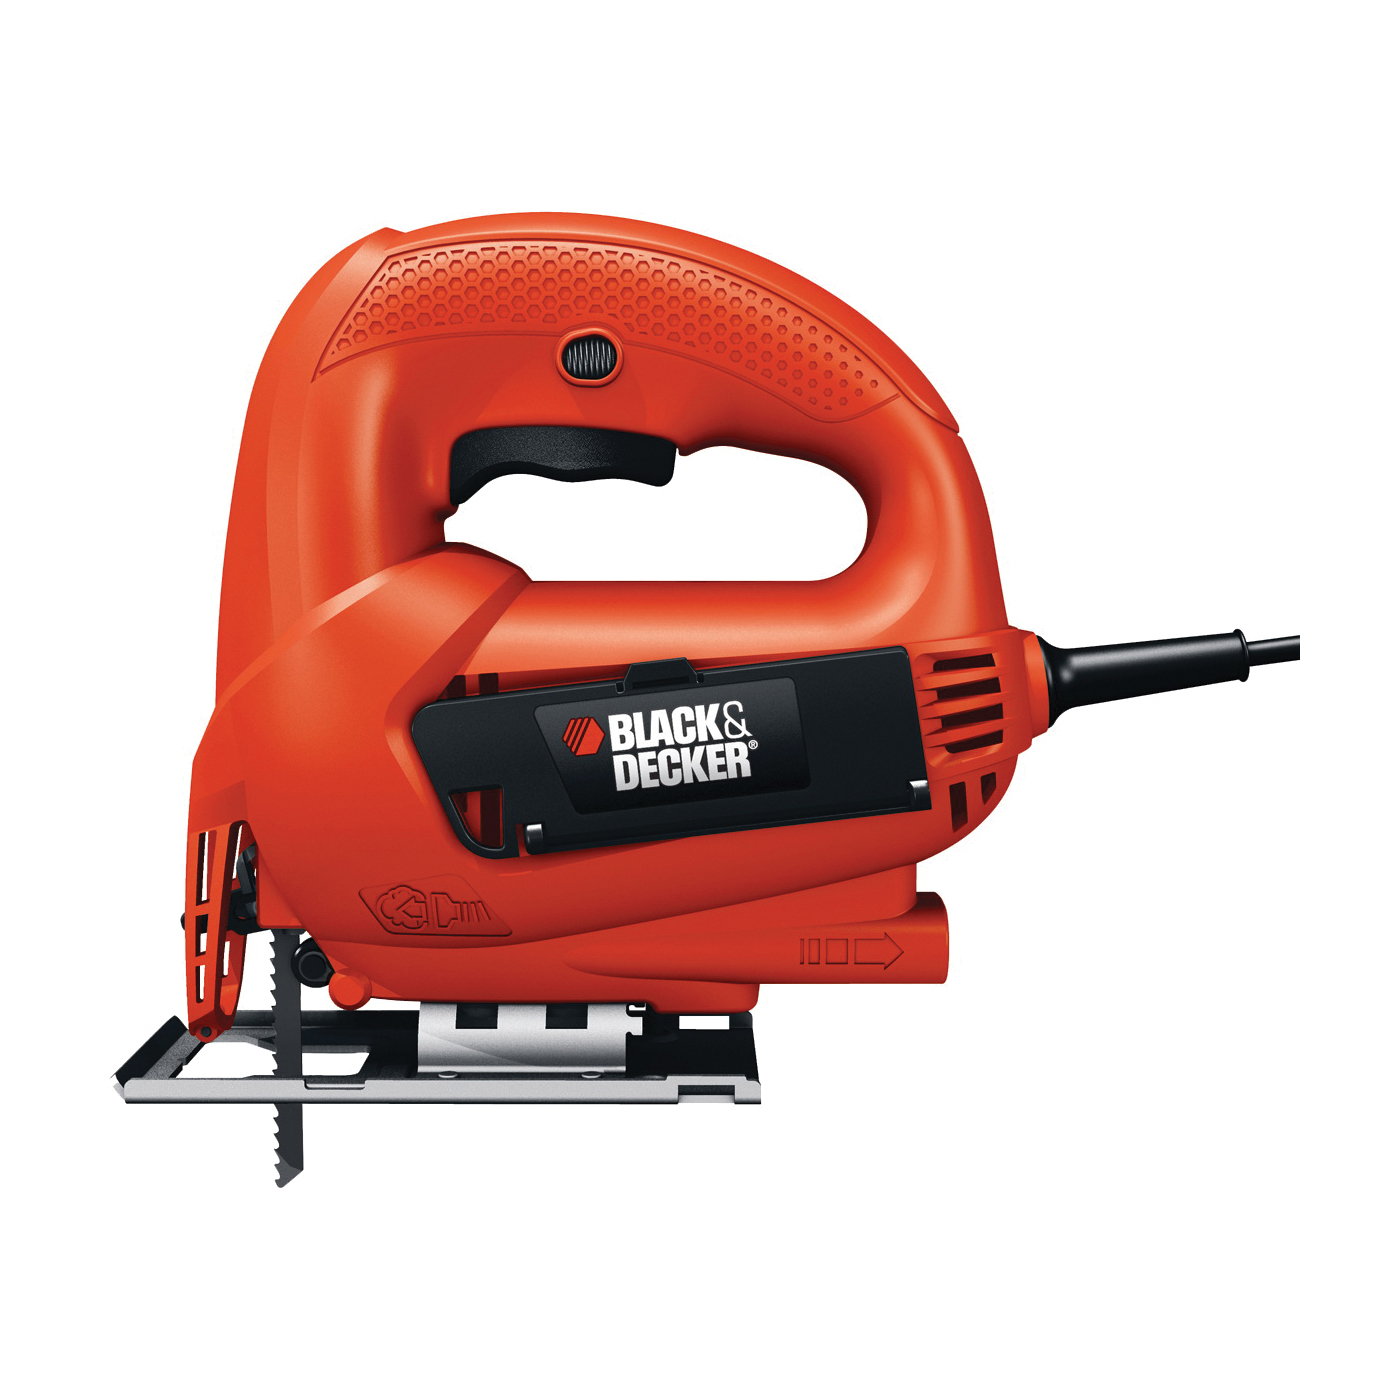 Picture of Black+Decker BDEJS300C/JS515 Jig Saw, 4.5 A, 11/16 in L Stroke, 3000 spm SPM